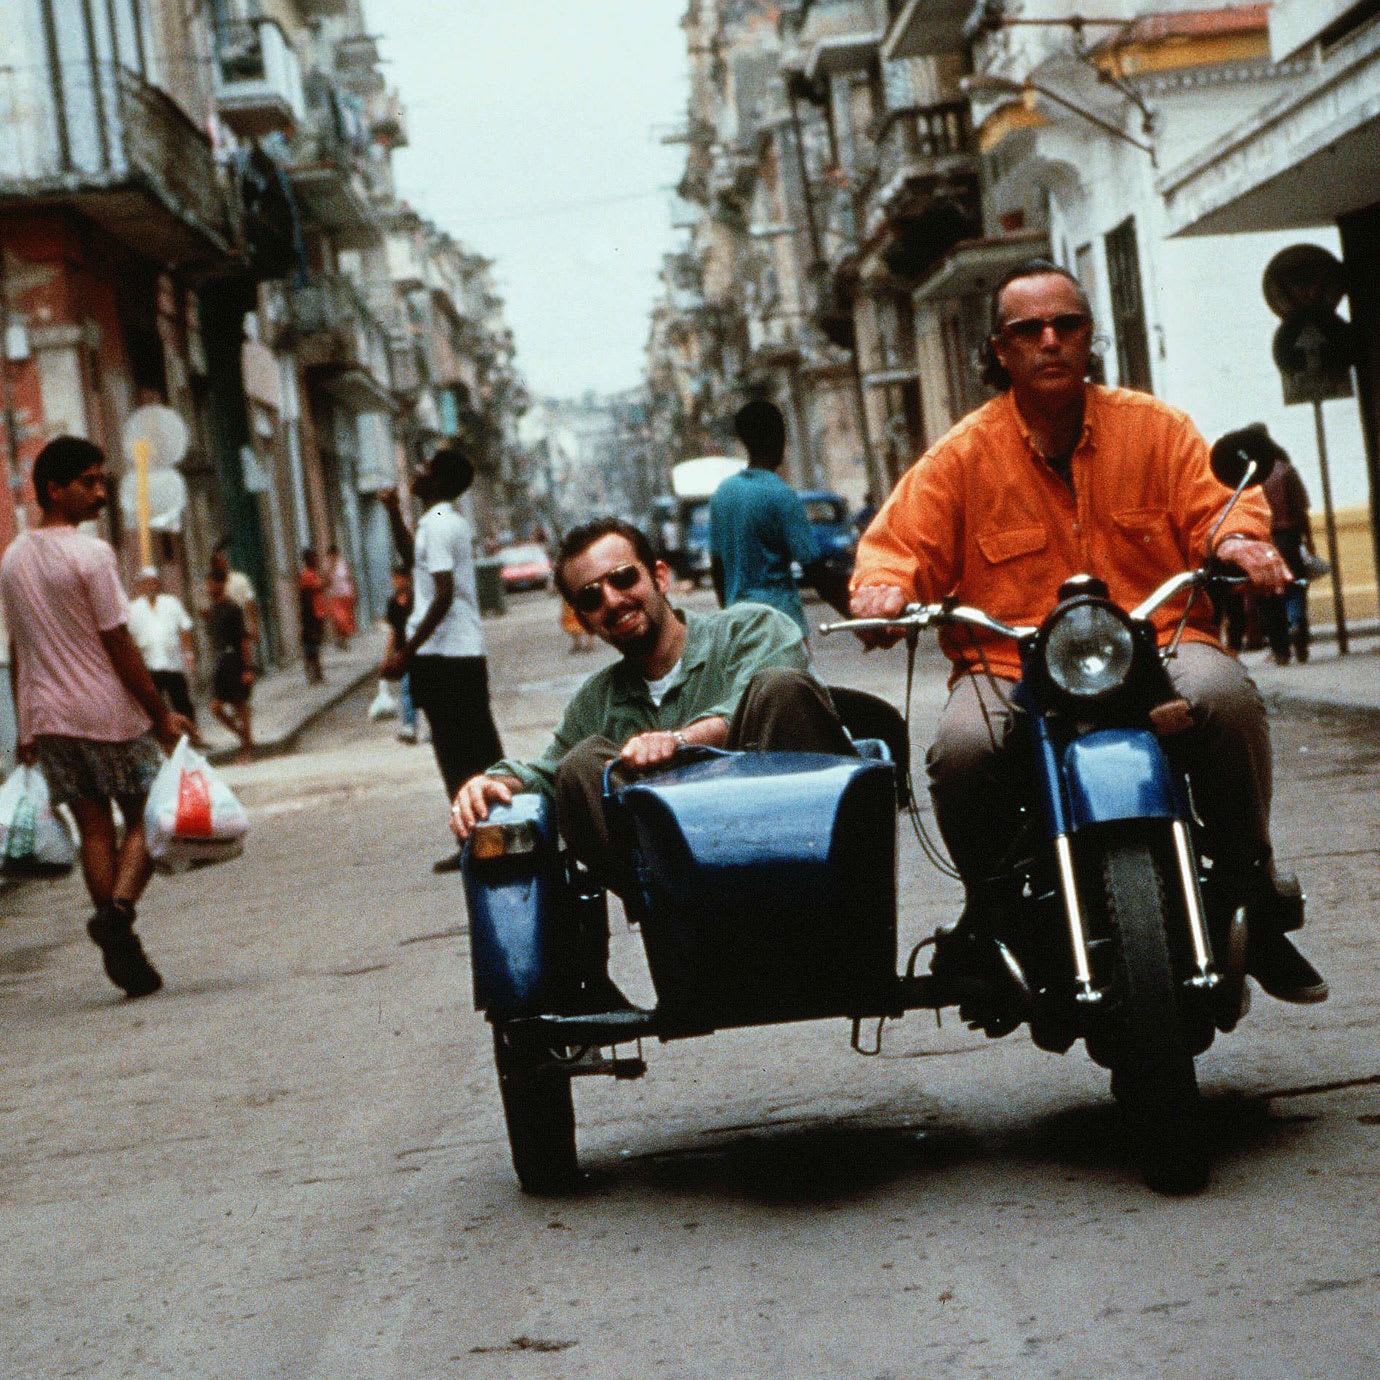 Two men on a motorbike and sidecar driving down a street.